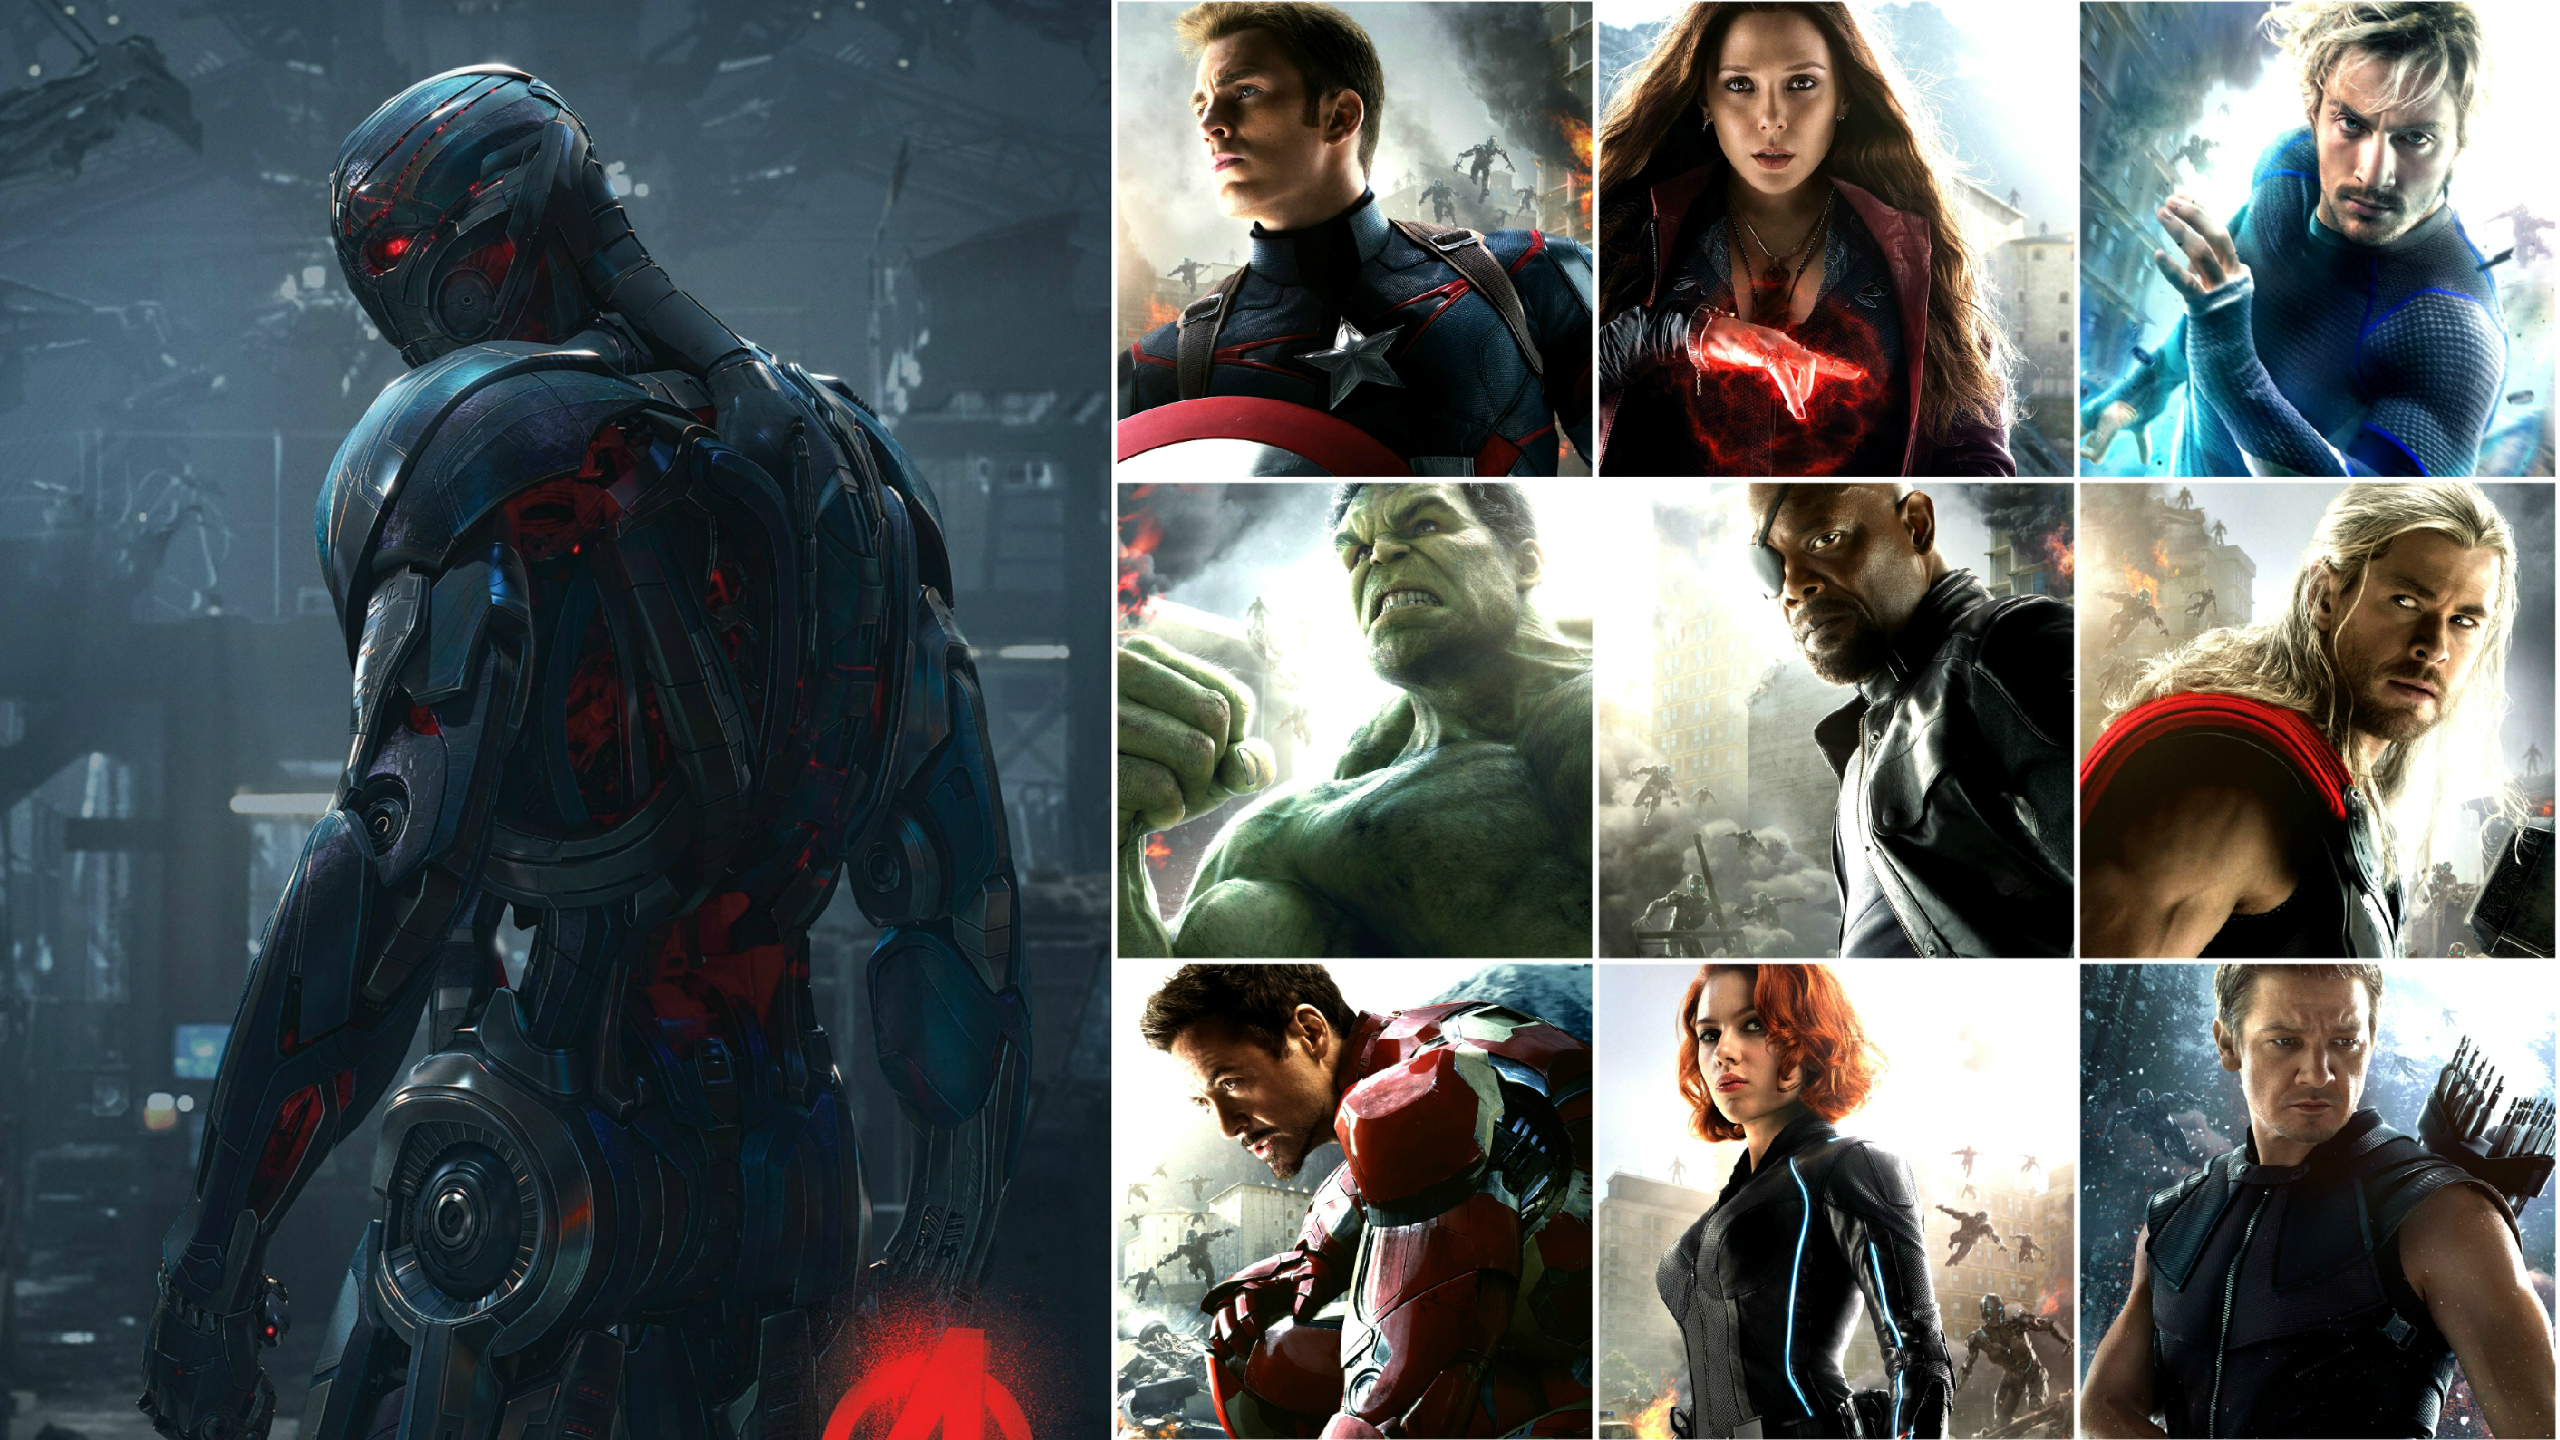 Avengers Age Of Ultron By Iloegbunam On Deviantart: Avengers Age Of Ultron By Jpakieto On DeviantArt